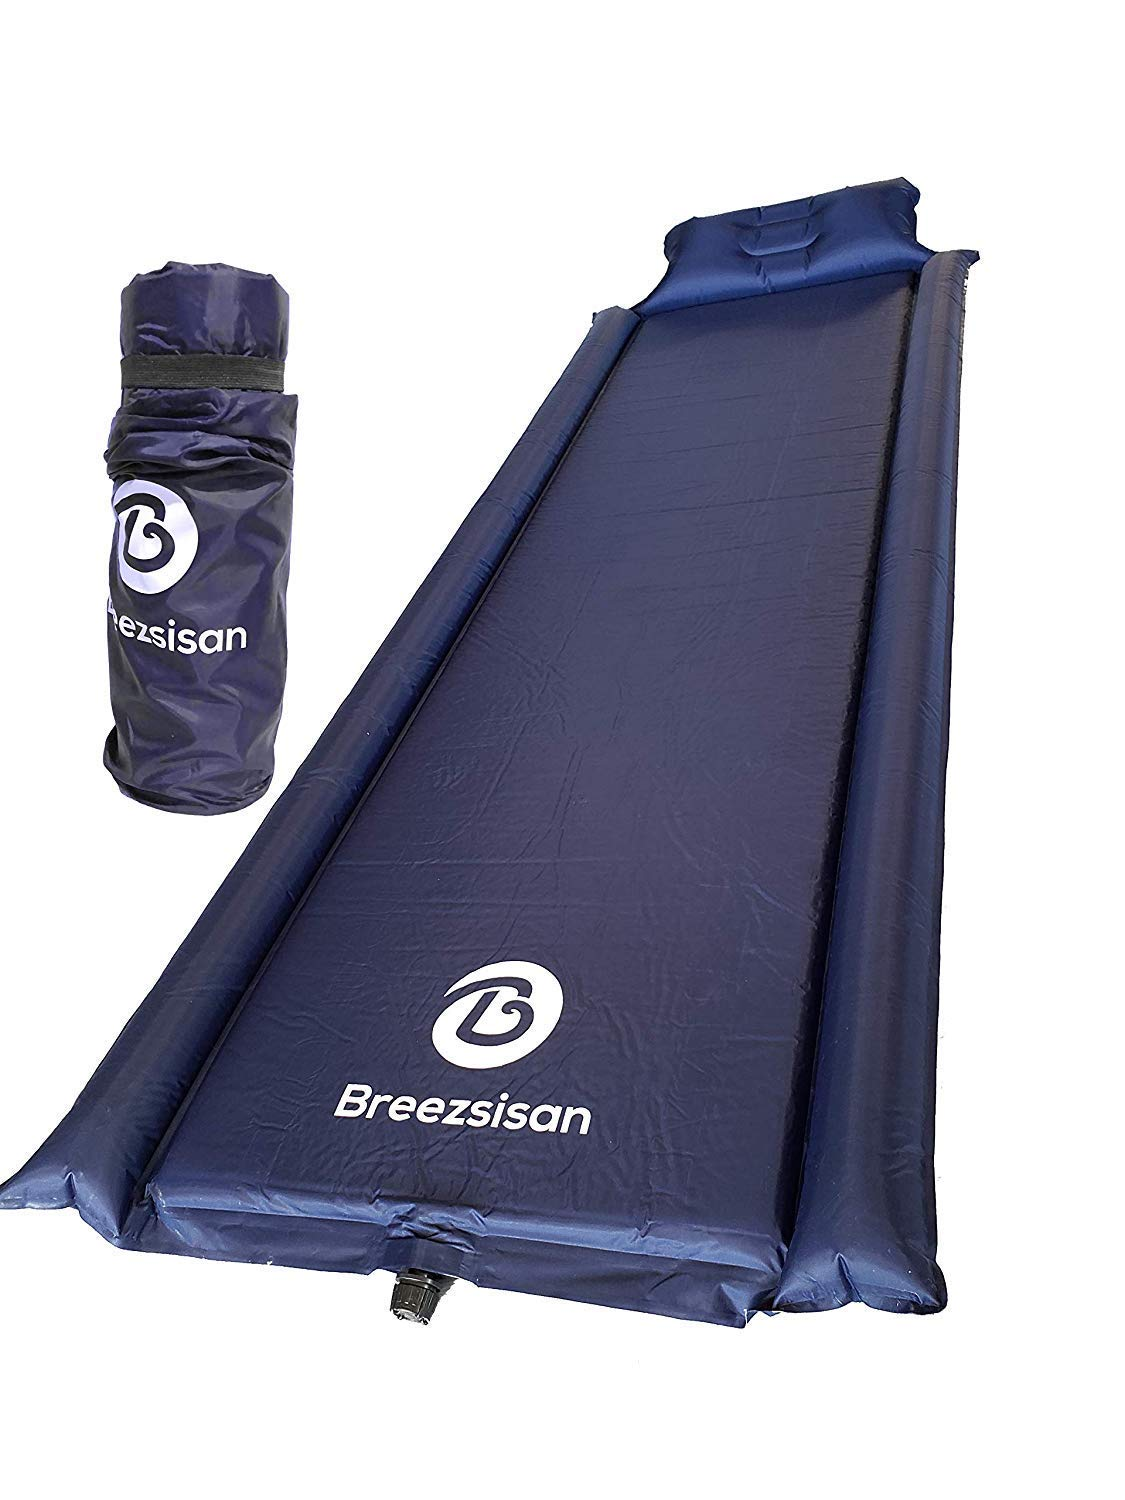 Breezsisan Sleeping pad with Attached Pillow Armrest. Inflatable Light Large Camp Mat-Compact Long Pads-Self-Inflating Foam Air Mattress for Hiking Backpacking Cot Hammock Tent Sleep Bag & Camping by Breezsisan